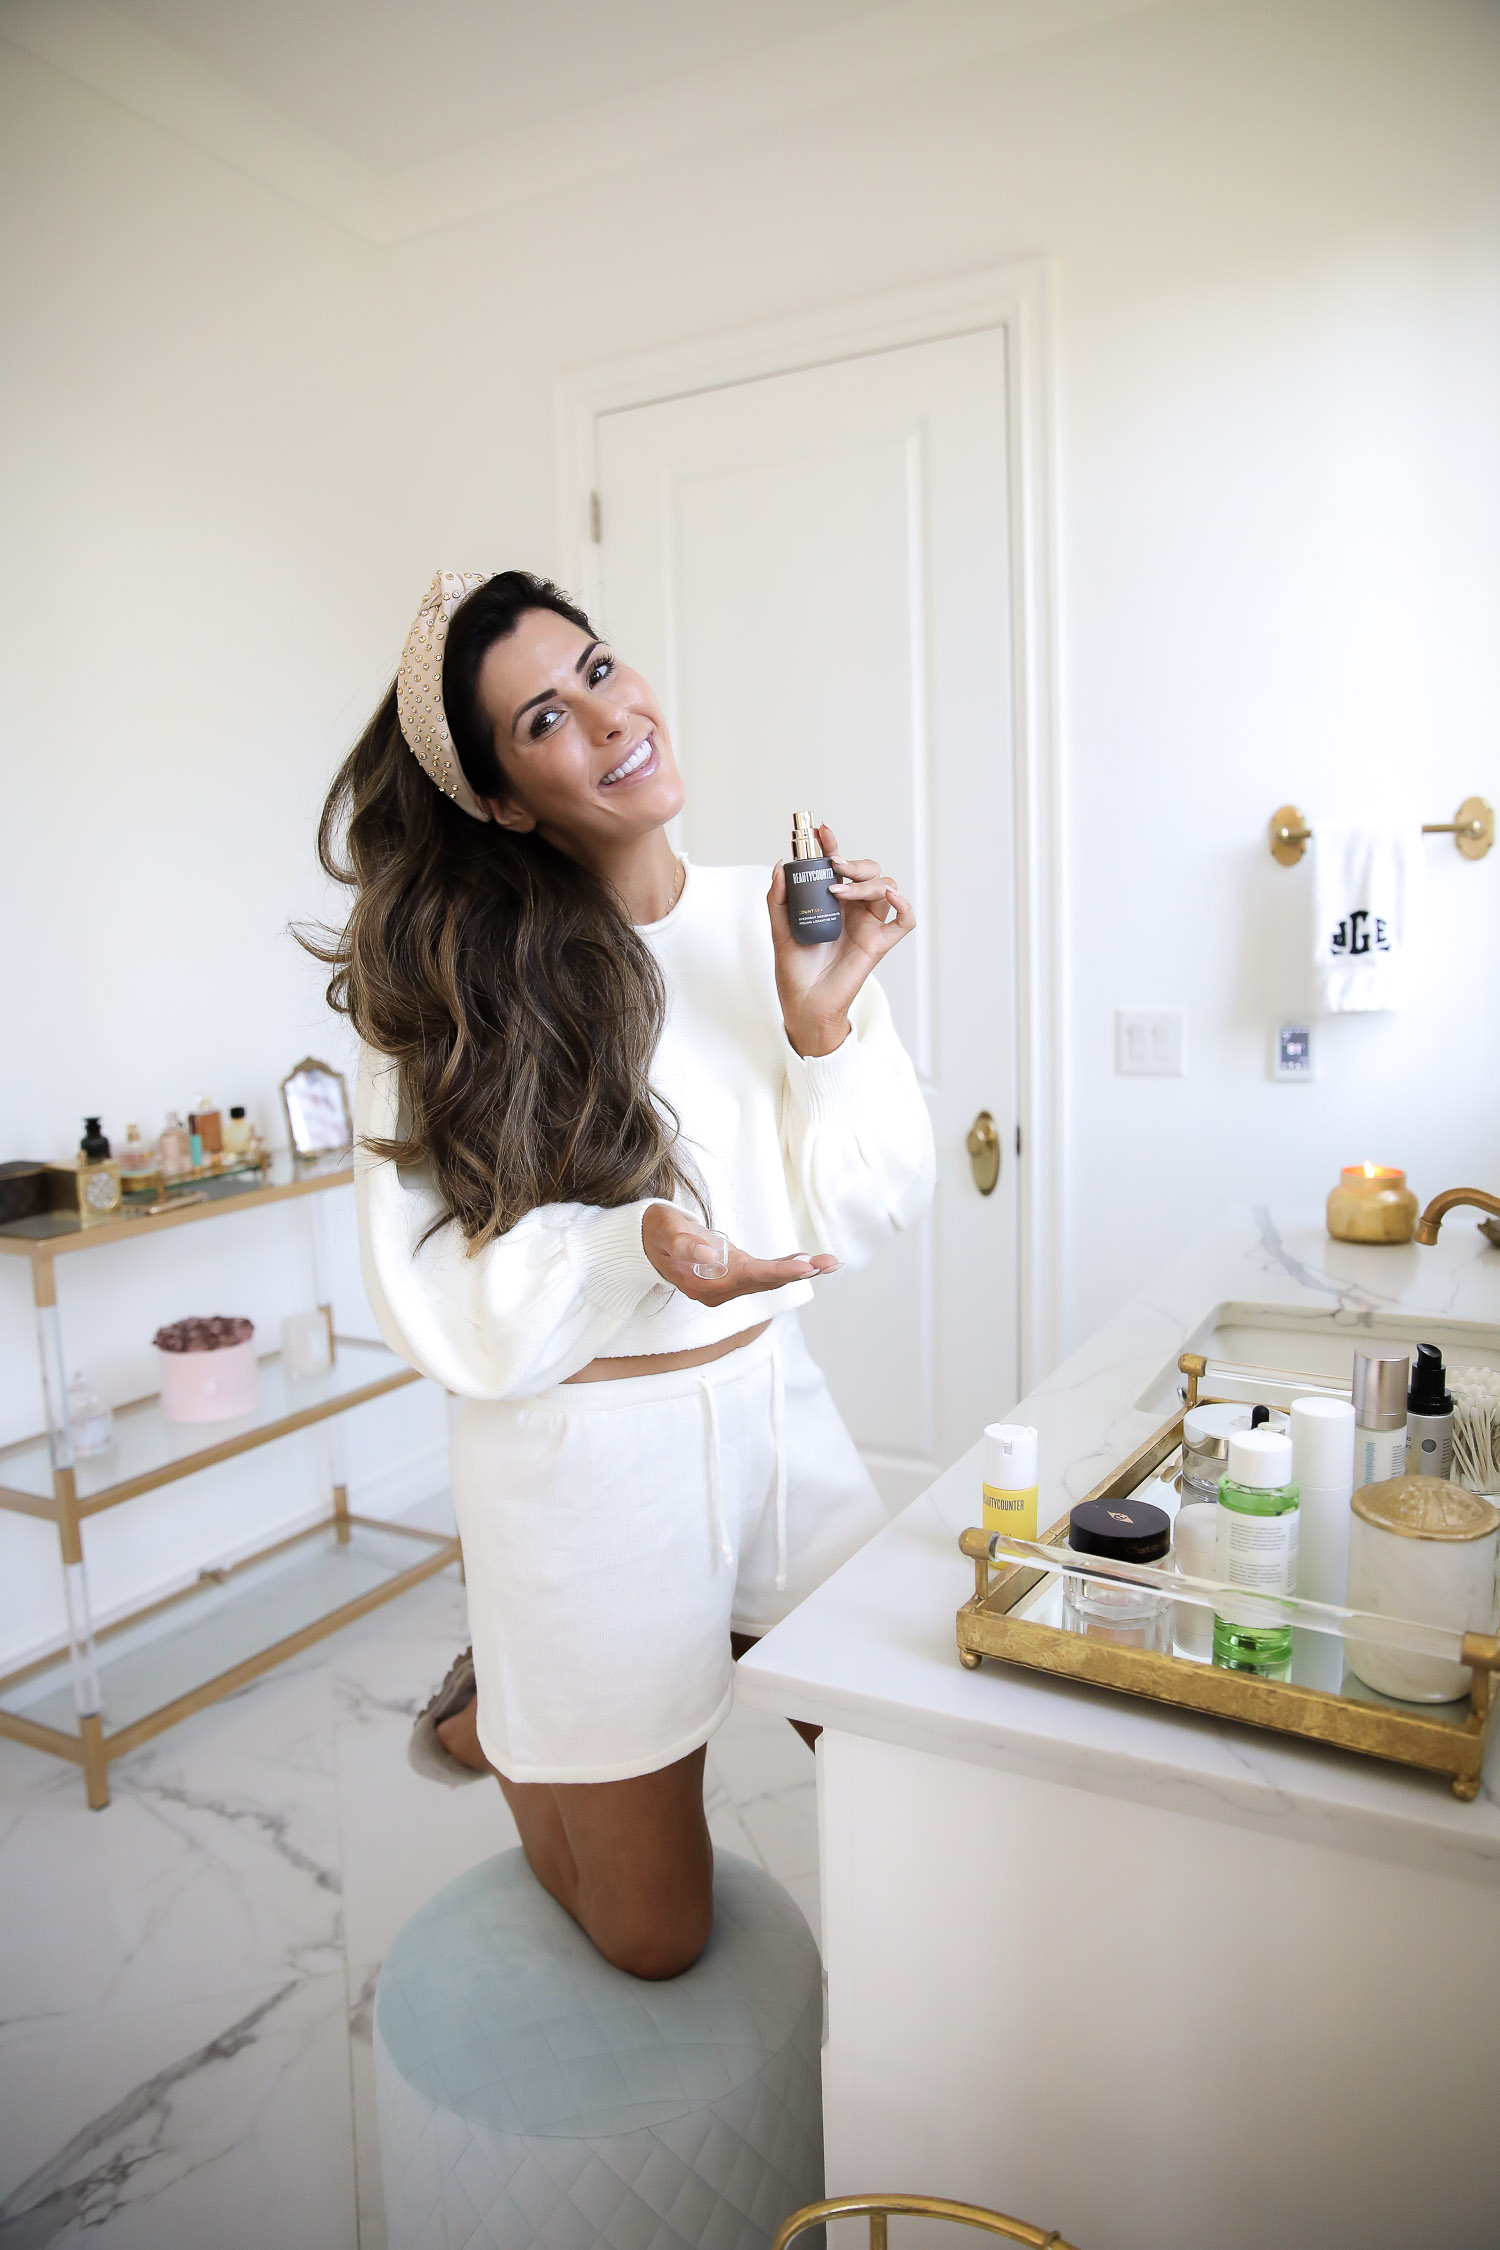 beauty counter review vitamin C, Beauty Counter Sephora overnight resurfacing gel, emily ann gemma |  Beautycounter Products by popular US beauty blog, The Sweetest Thing: image of Emily Gemma wearing a cream sweater set and holding up a bottle of Beautycounter Counter+ Overnight Resurfacing Peel.